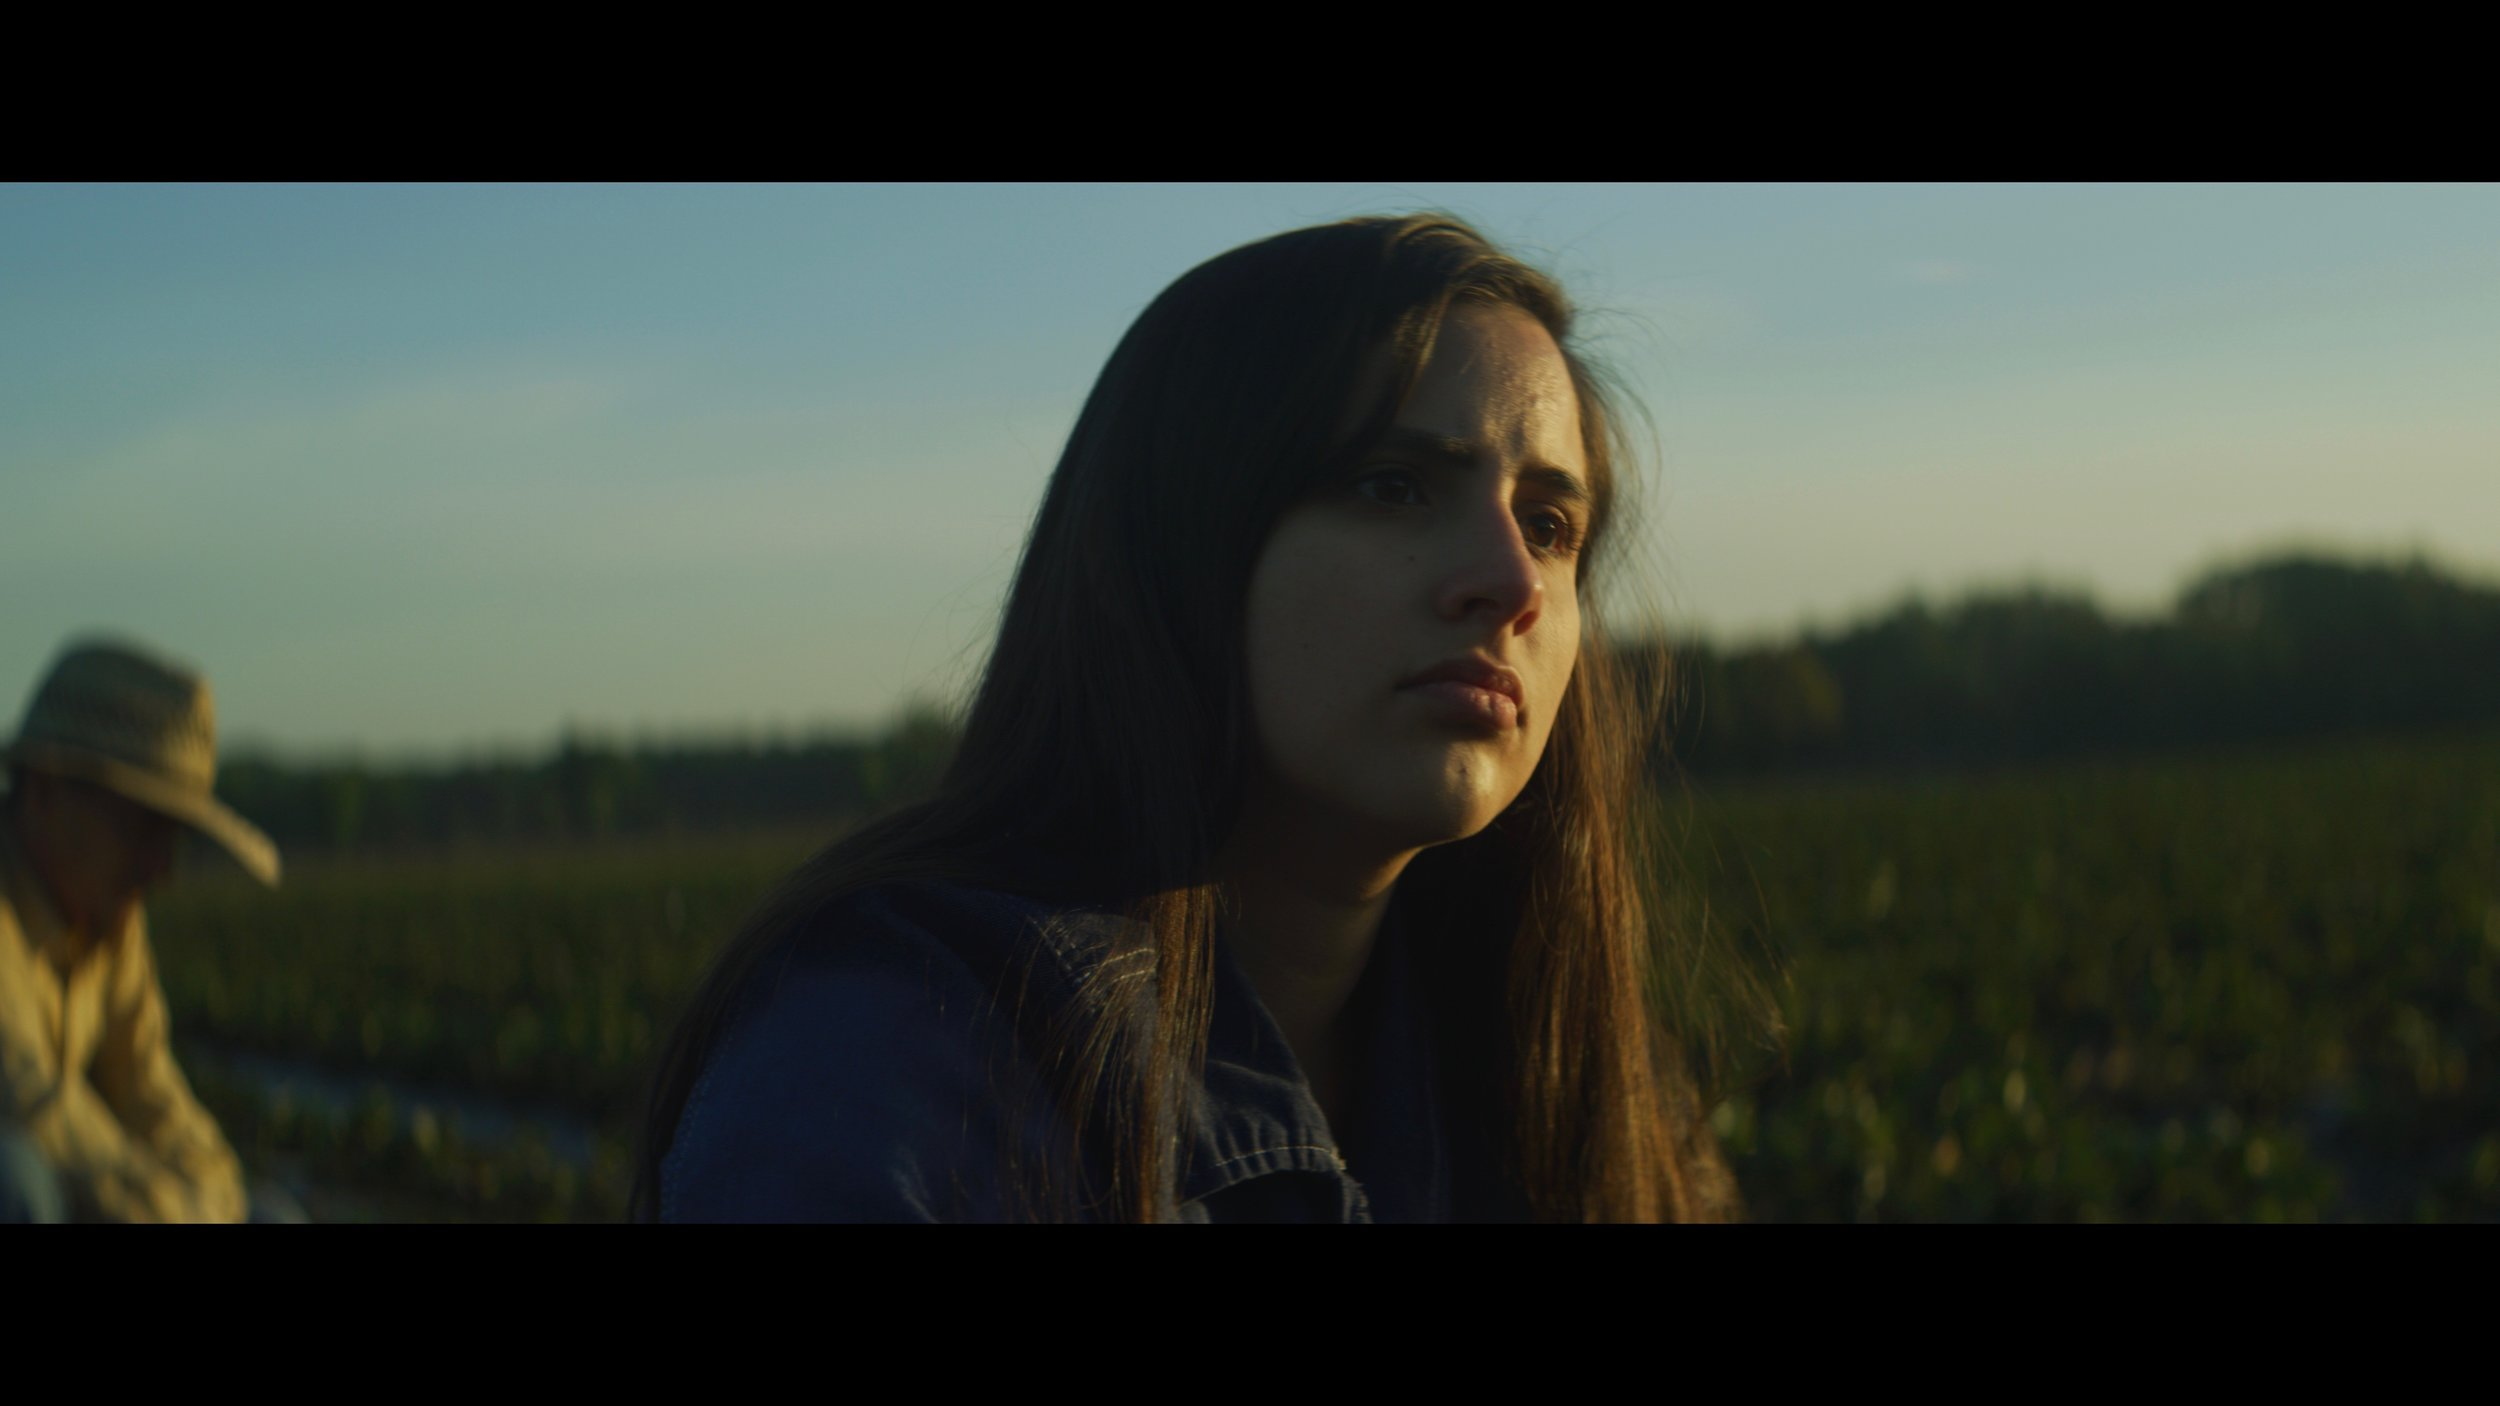 Maria - Maria is an immigrant who is working on a small horse ranch until her visa expires. She meets José, (a US resident) and she's unsure whether she wants to pursue him out of love, or a chance at a green card.